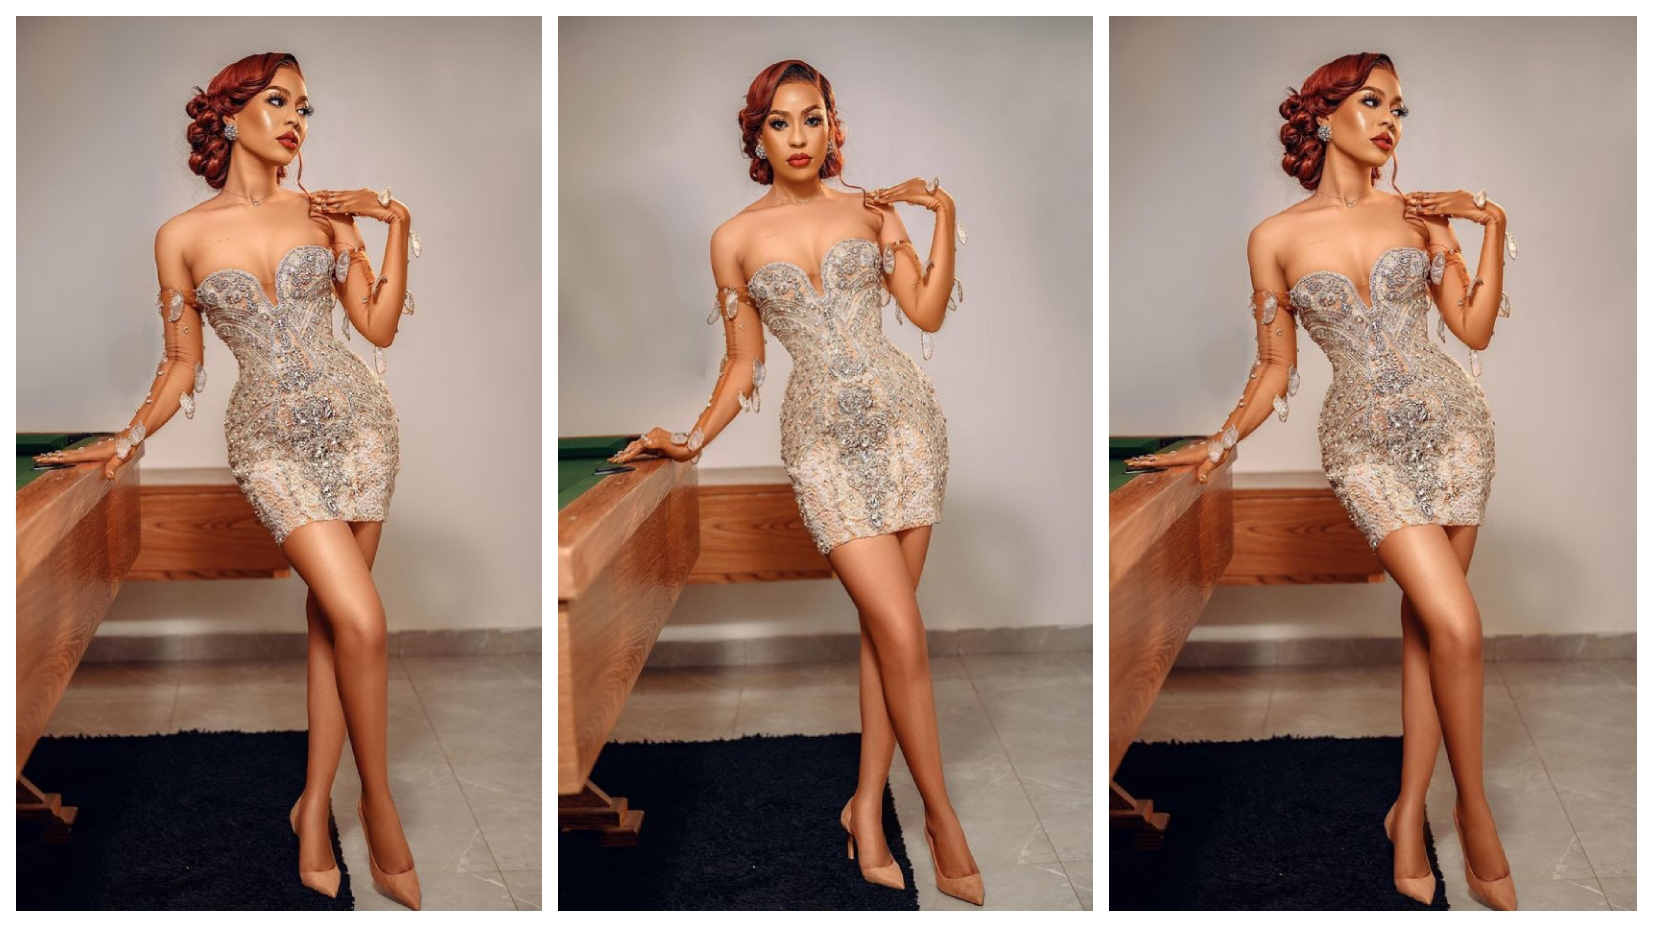 BBNaija: Nini is very beautiful, check out the adorable new photos she shared today